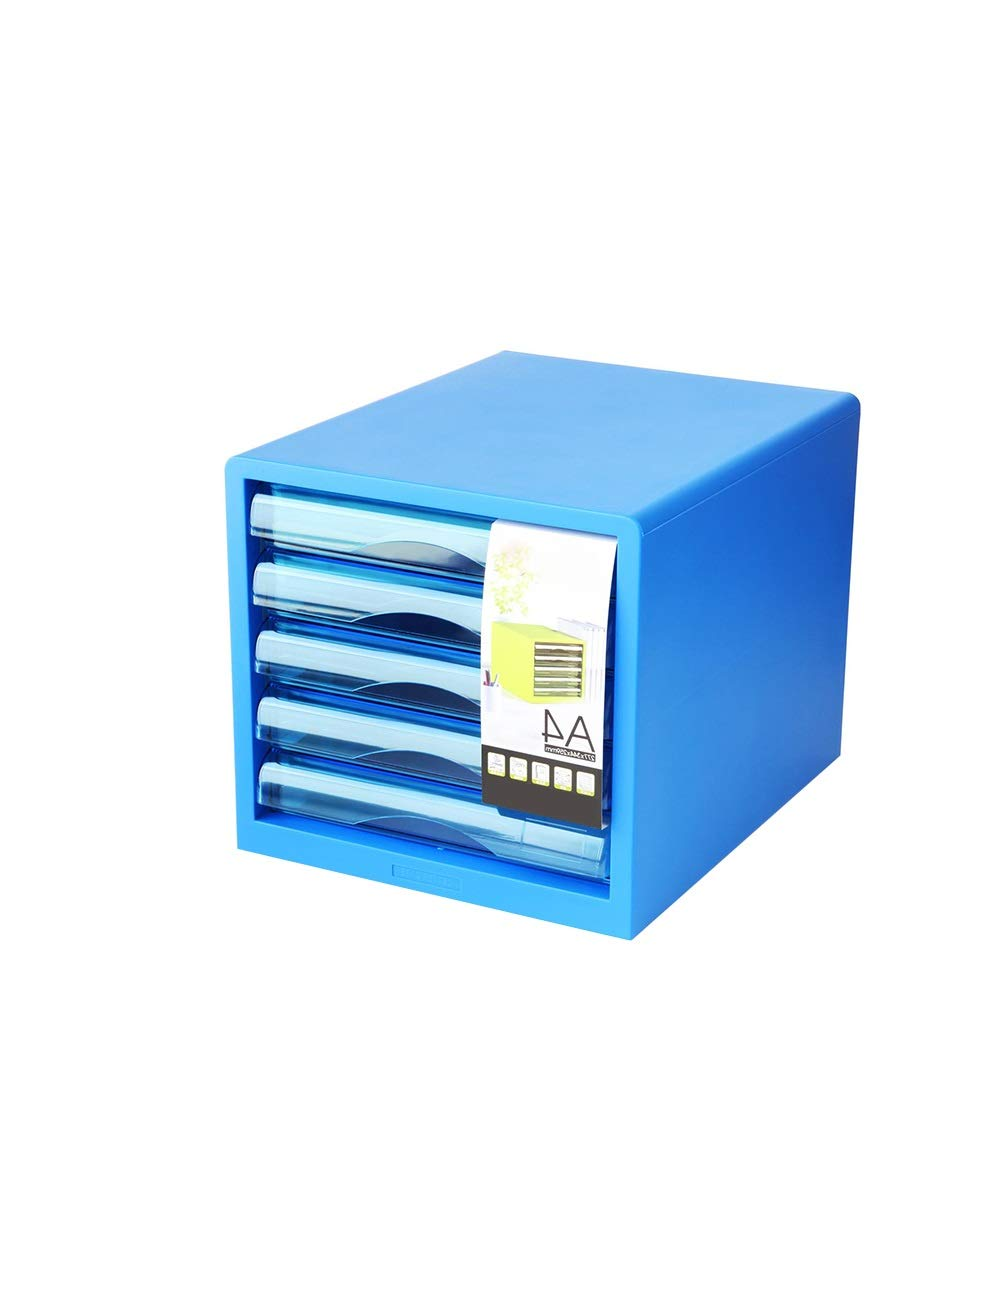 File Cabinets 5th Floor Innovation Charming Design White Blue Green Office File Manager Locker Desktop Manager Home Office Furniture (Color : A) by File Cabinets